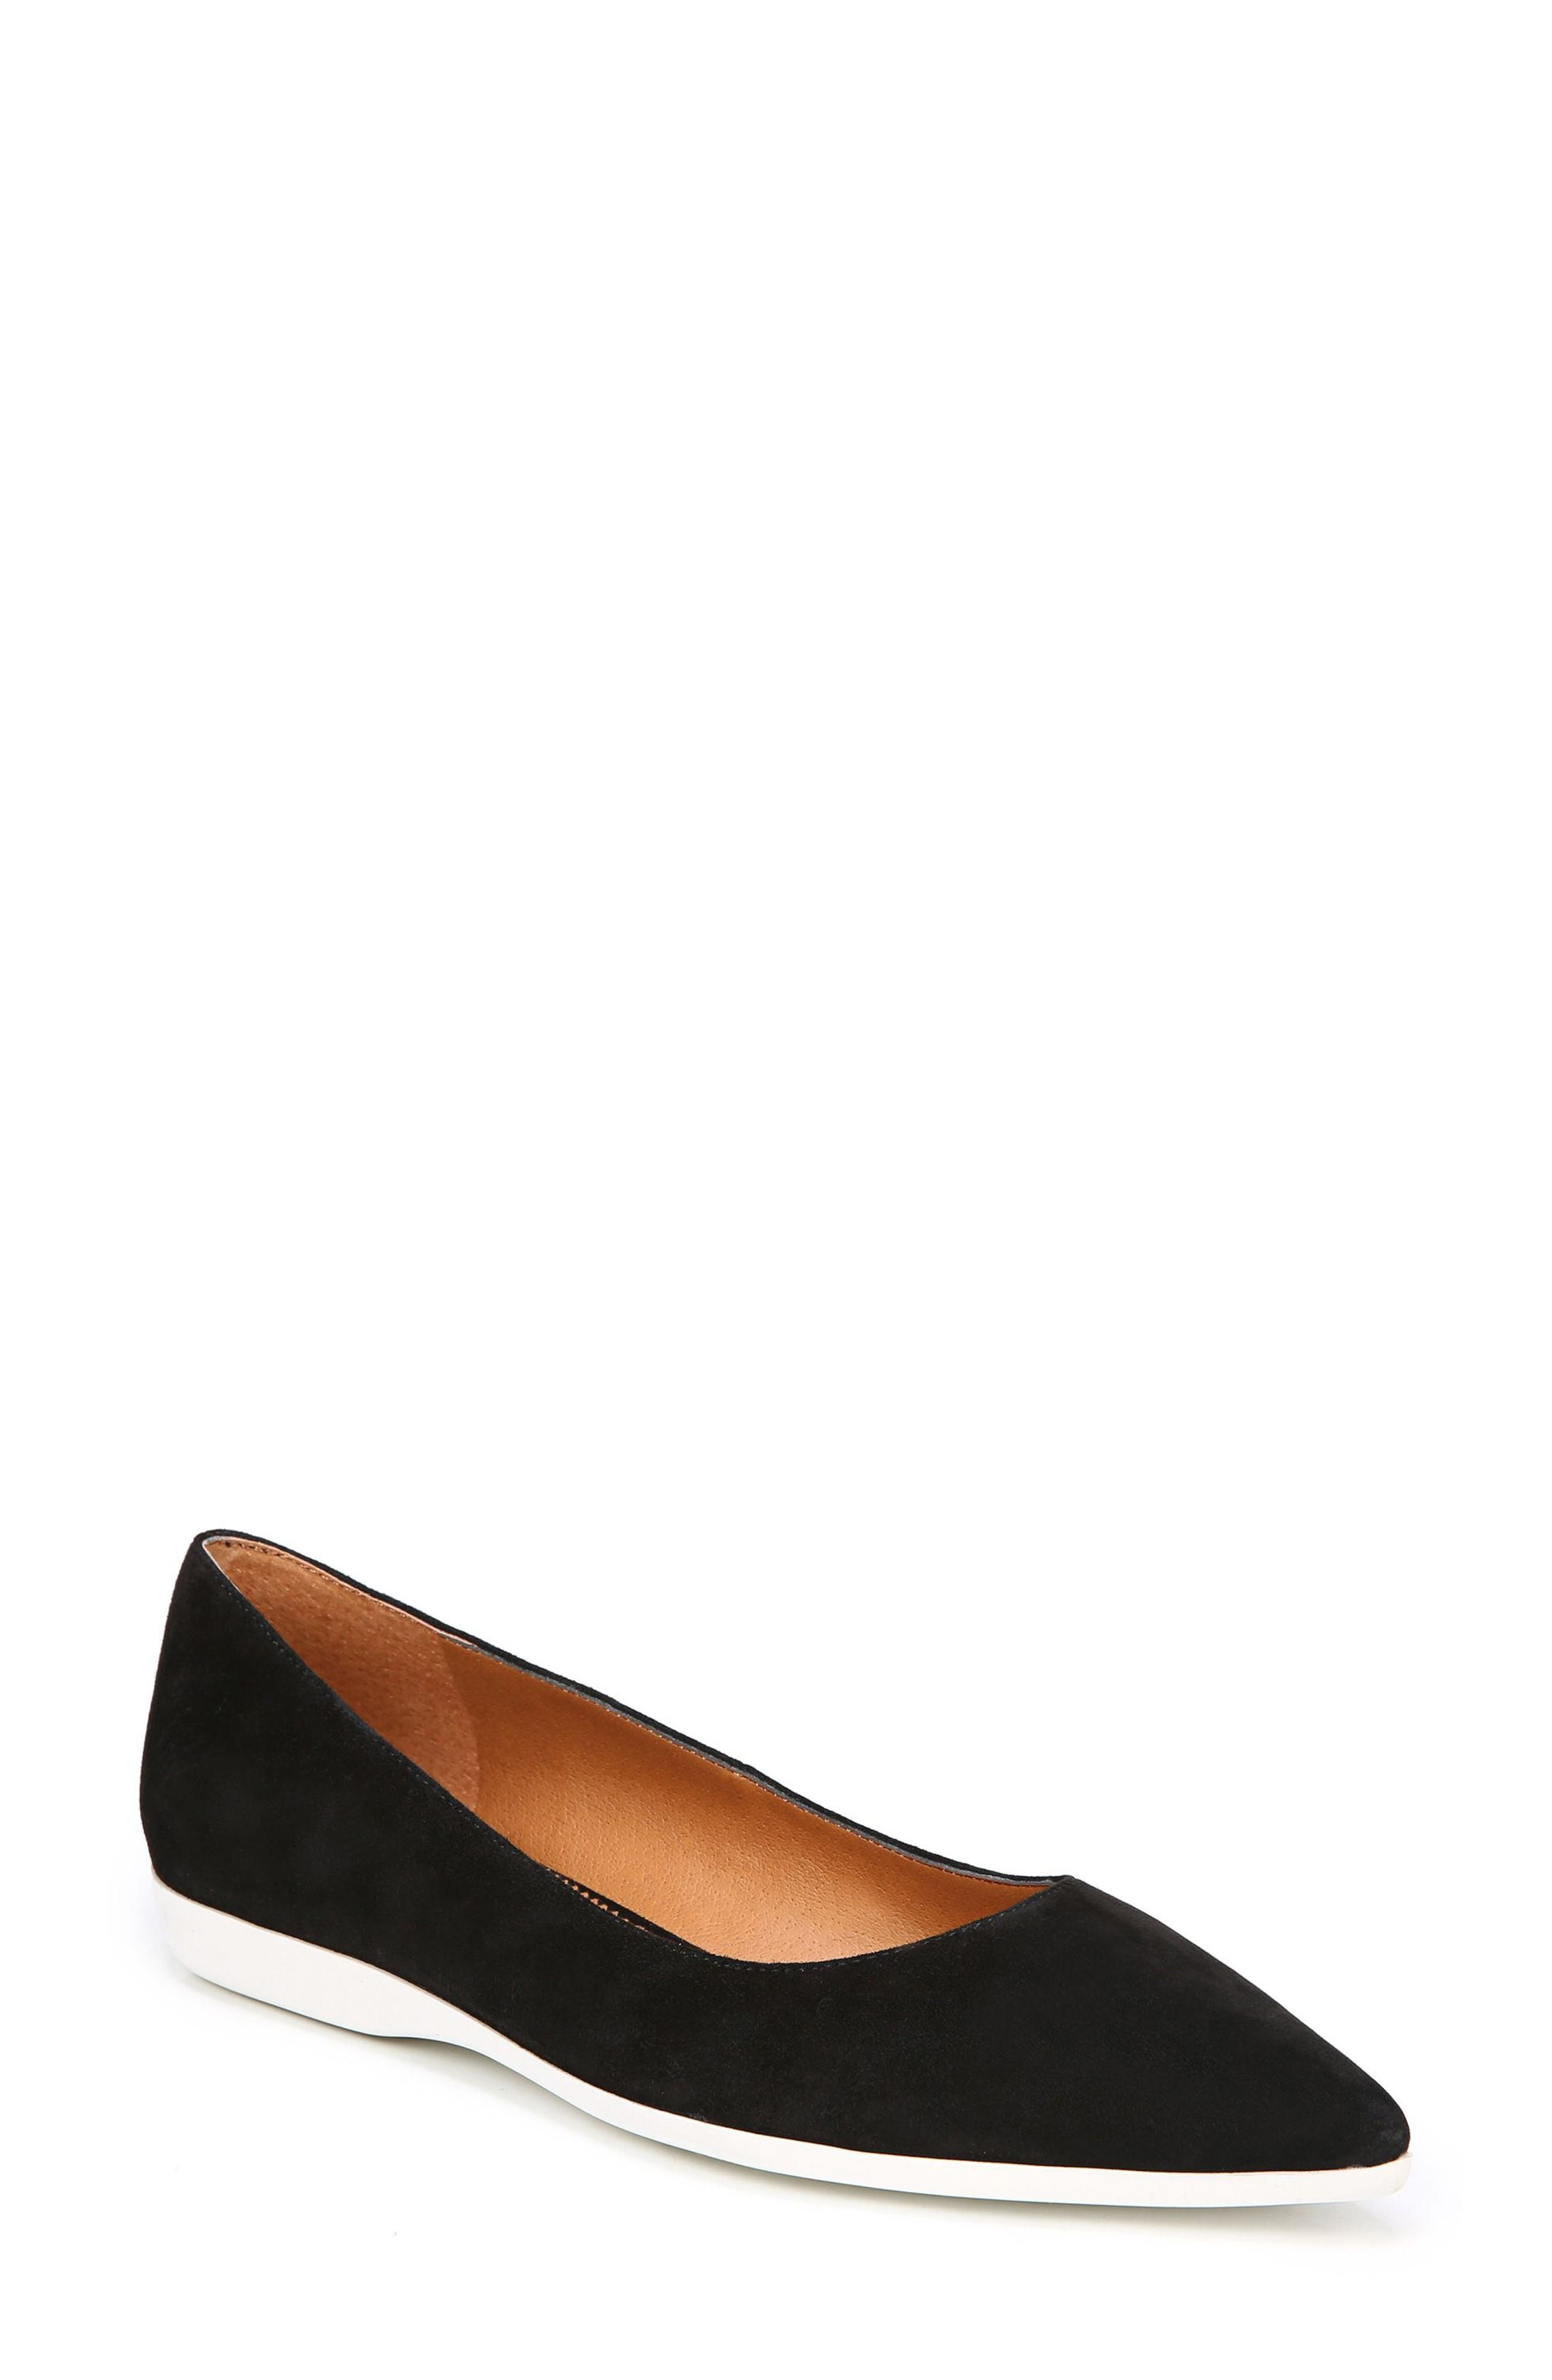 Dexie Pointy Toe Flat,                         Main,                         color, Black Suede